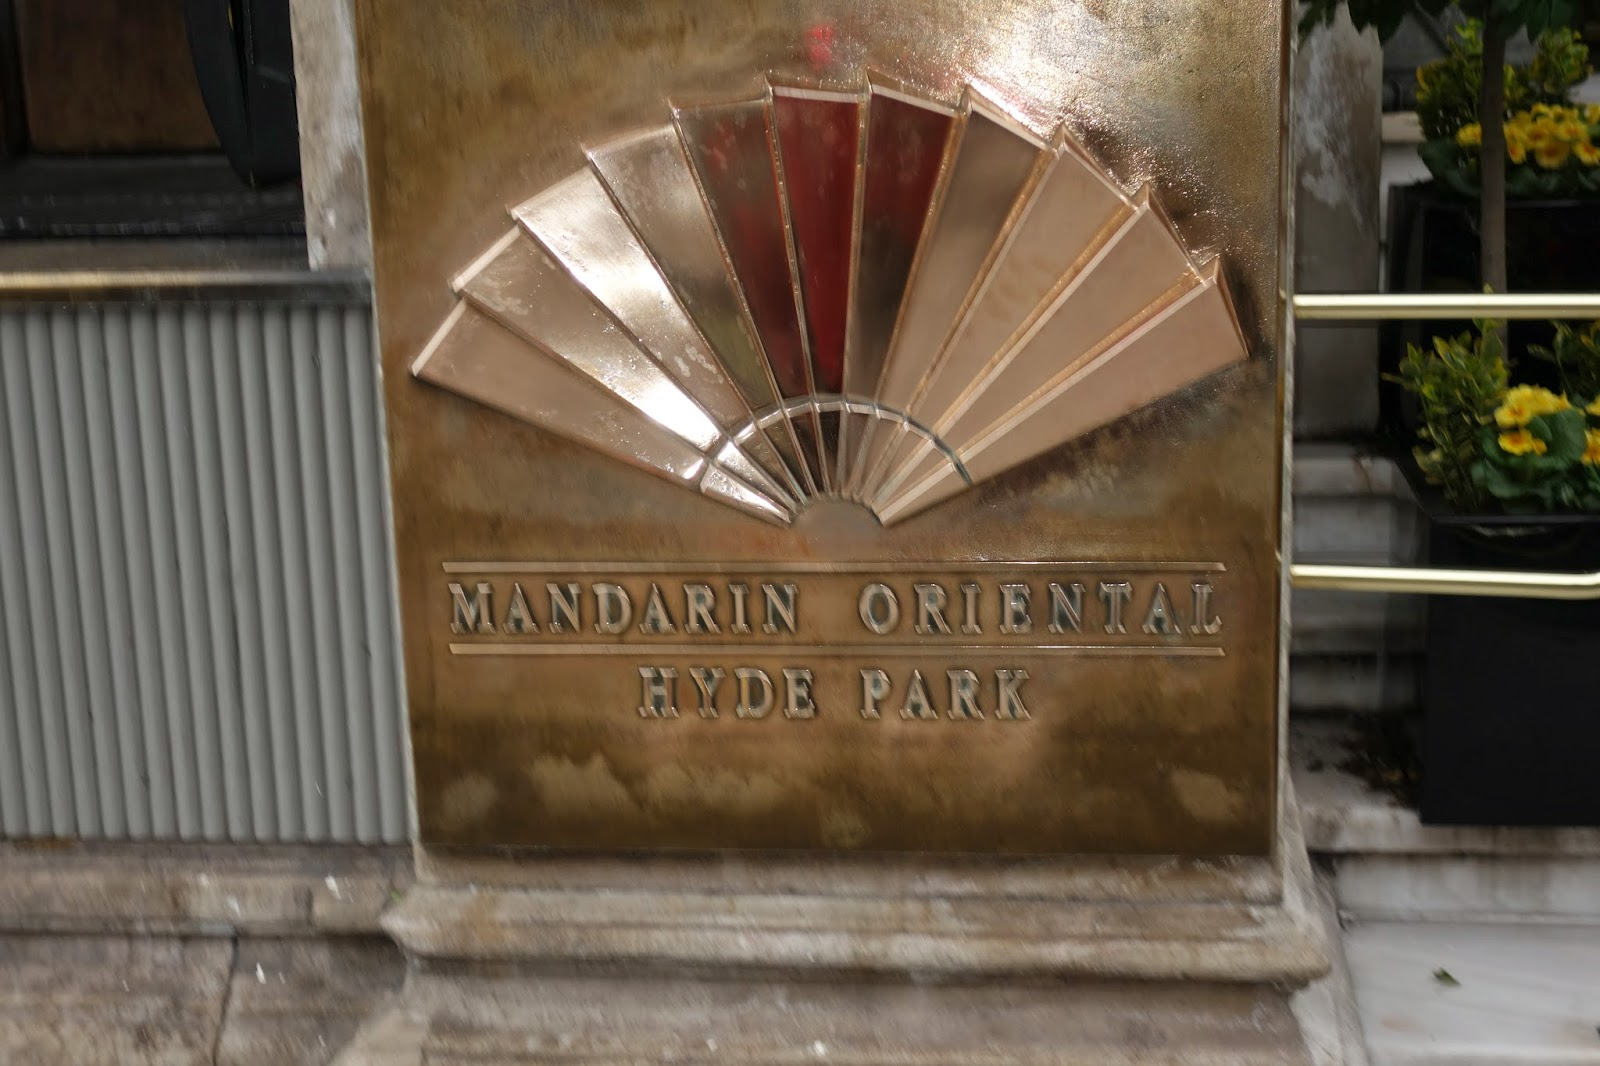 Sign for the Mandarin Oriental